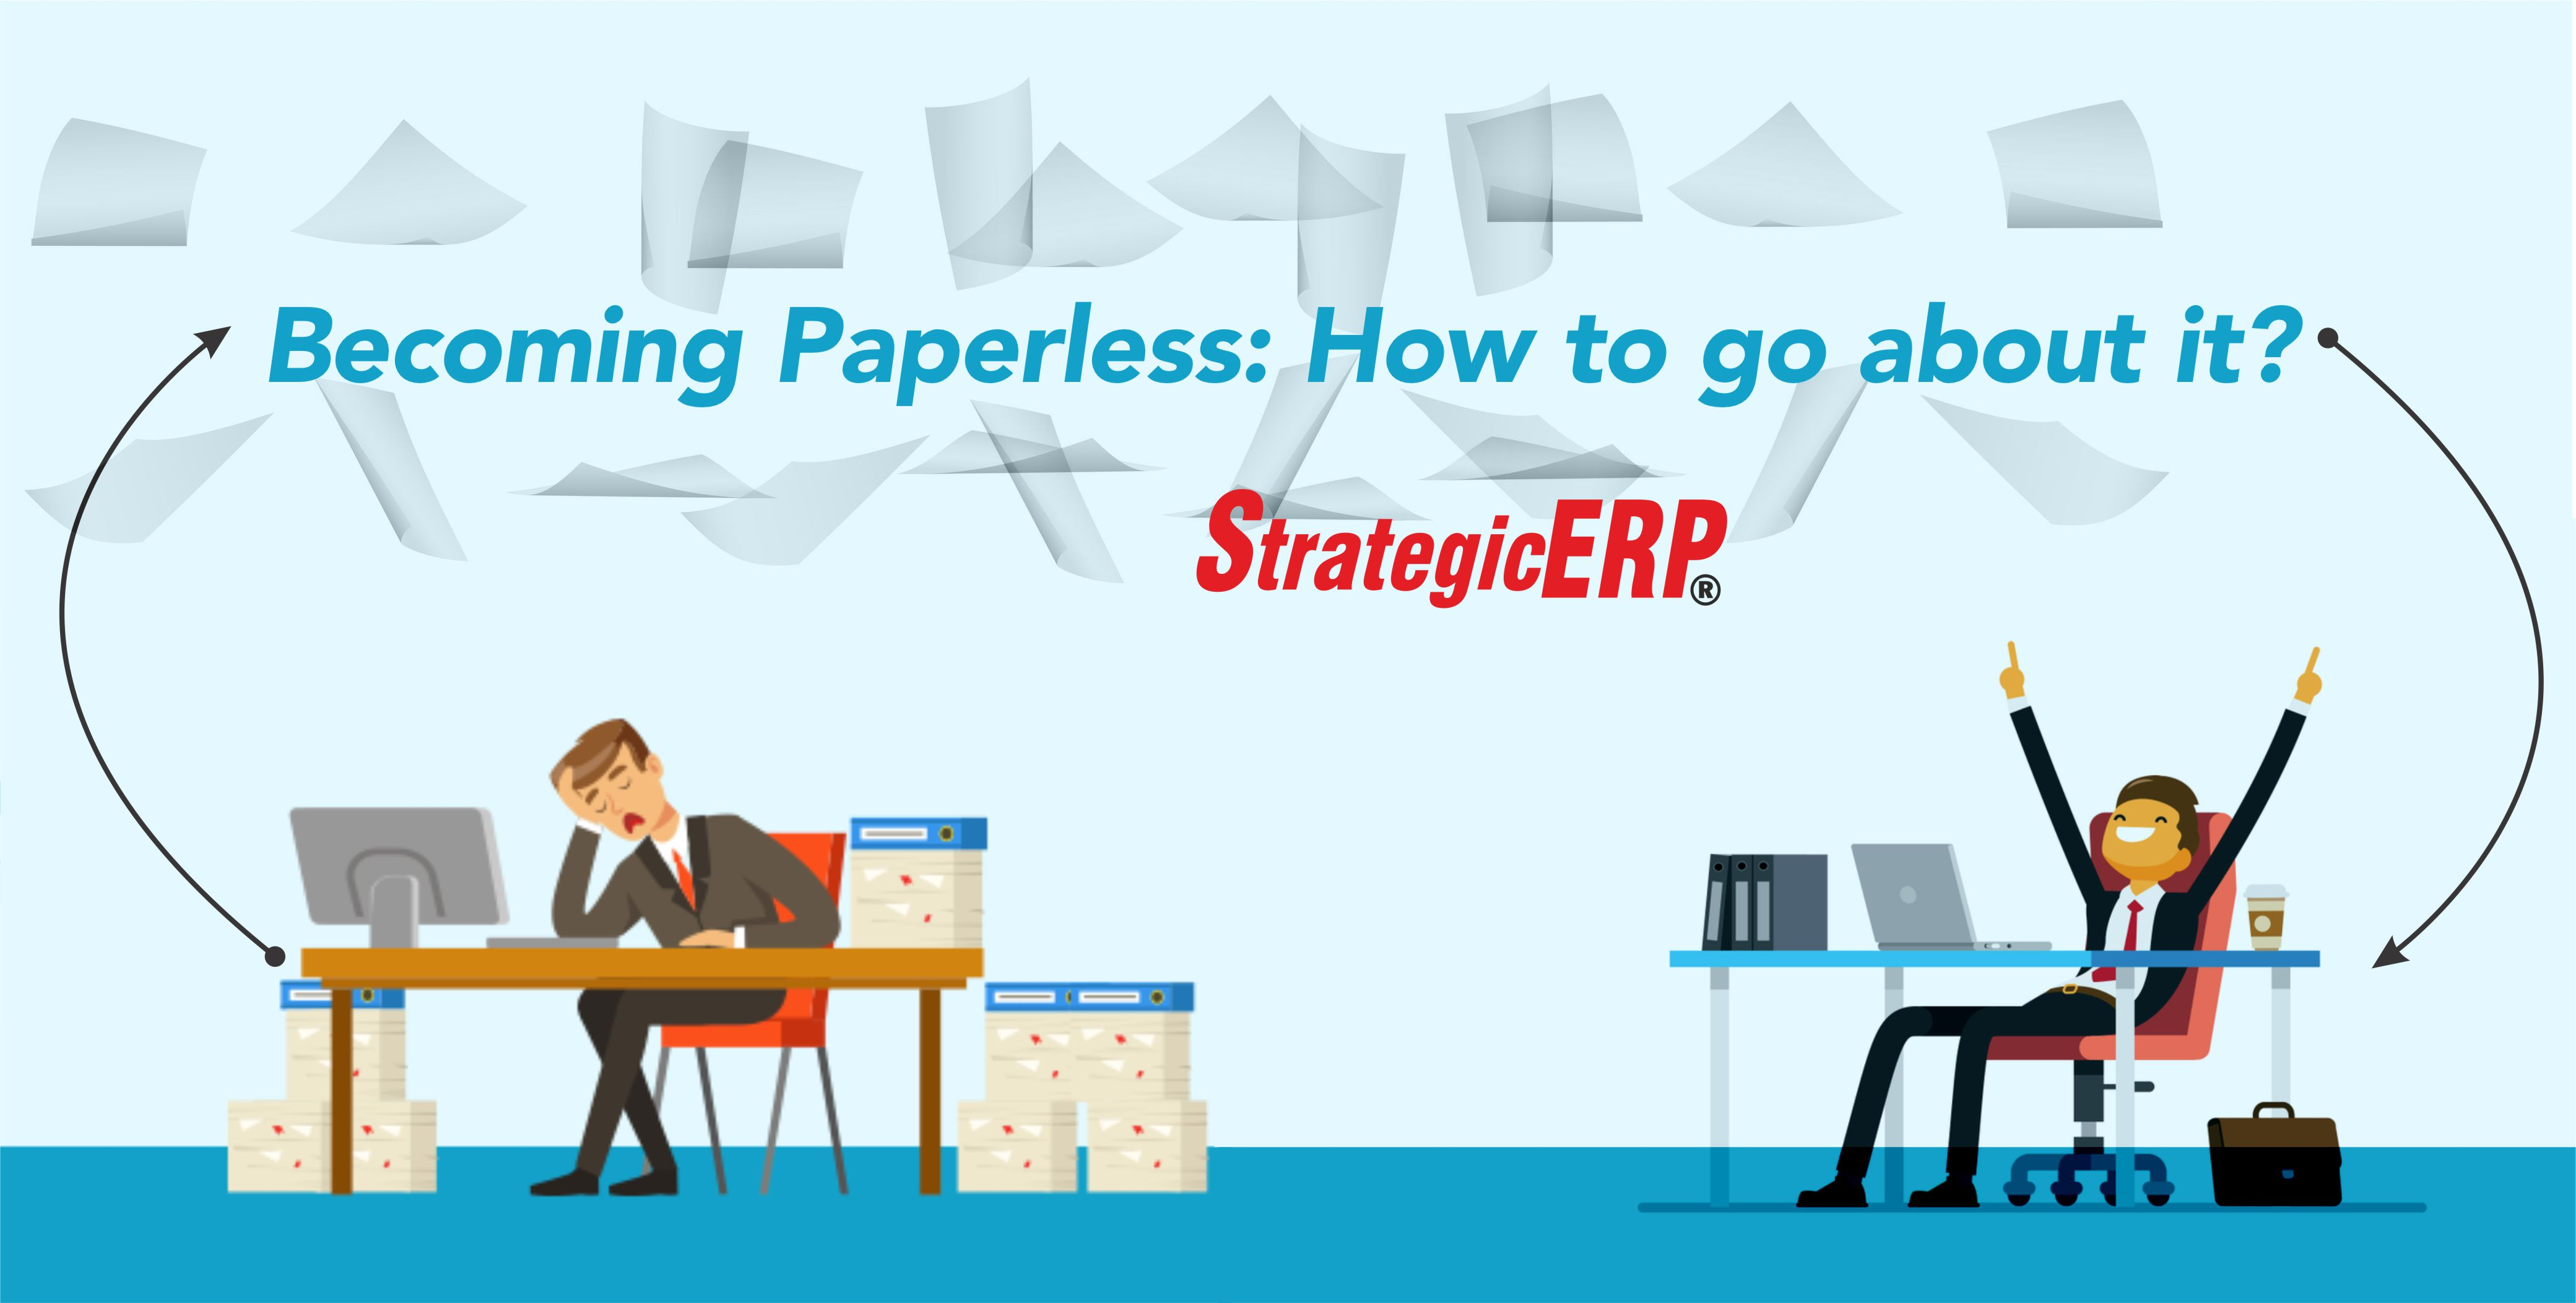 Becoming Paperless: How to go about it?